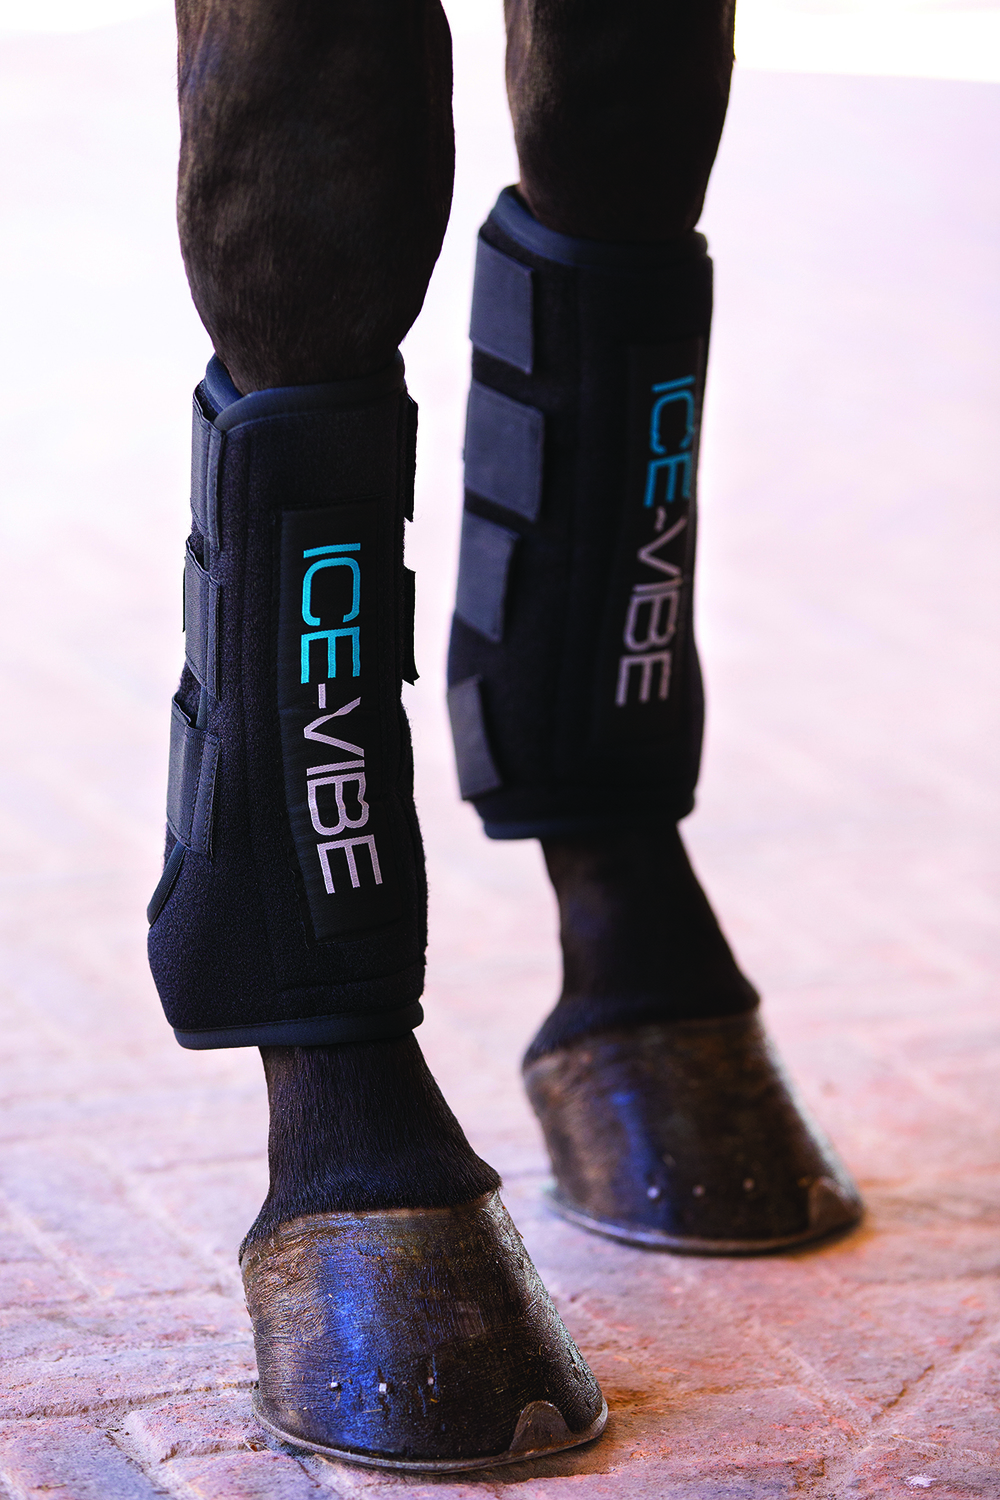 IceVibe boots from Horseware